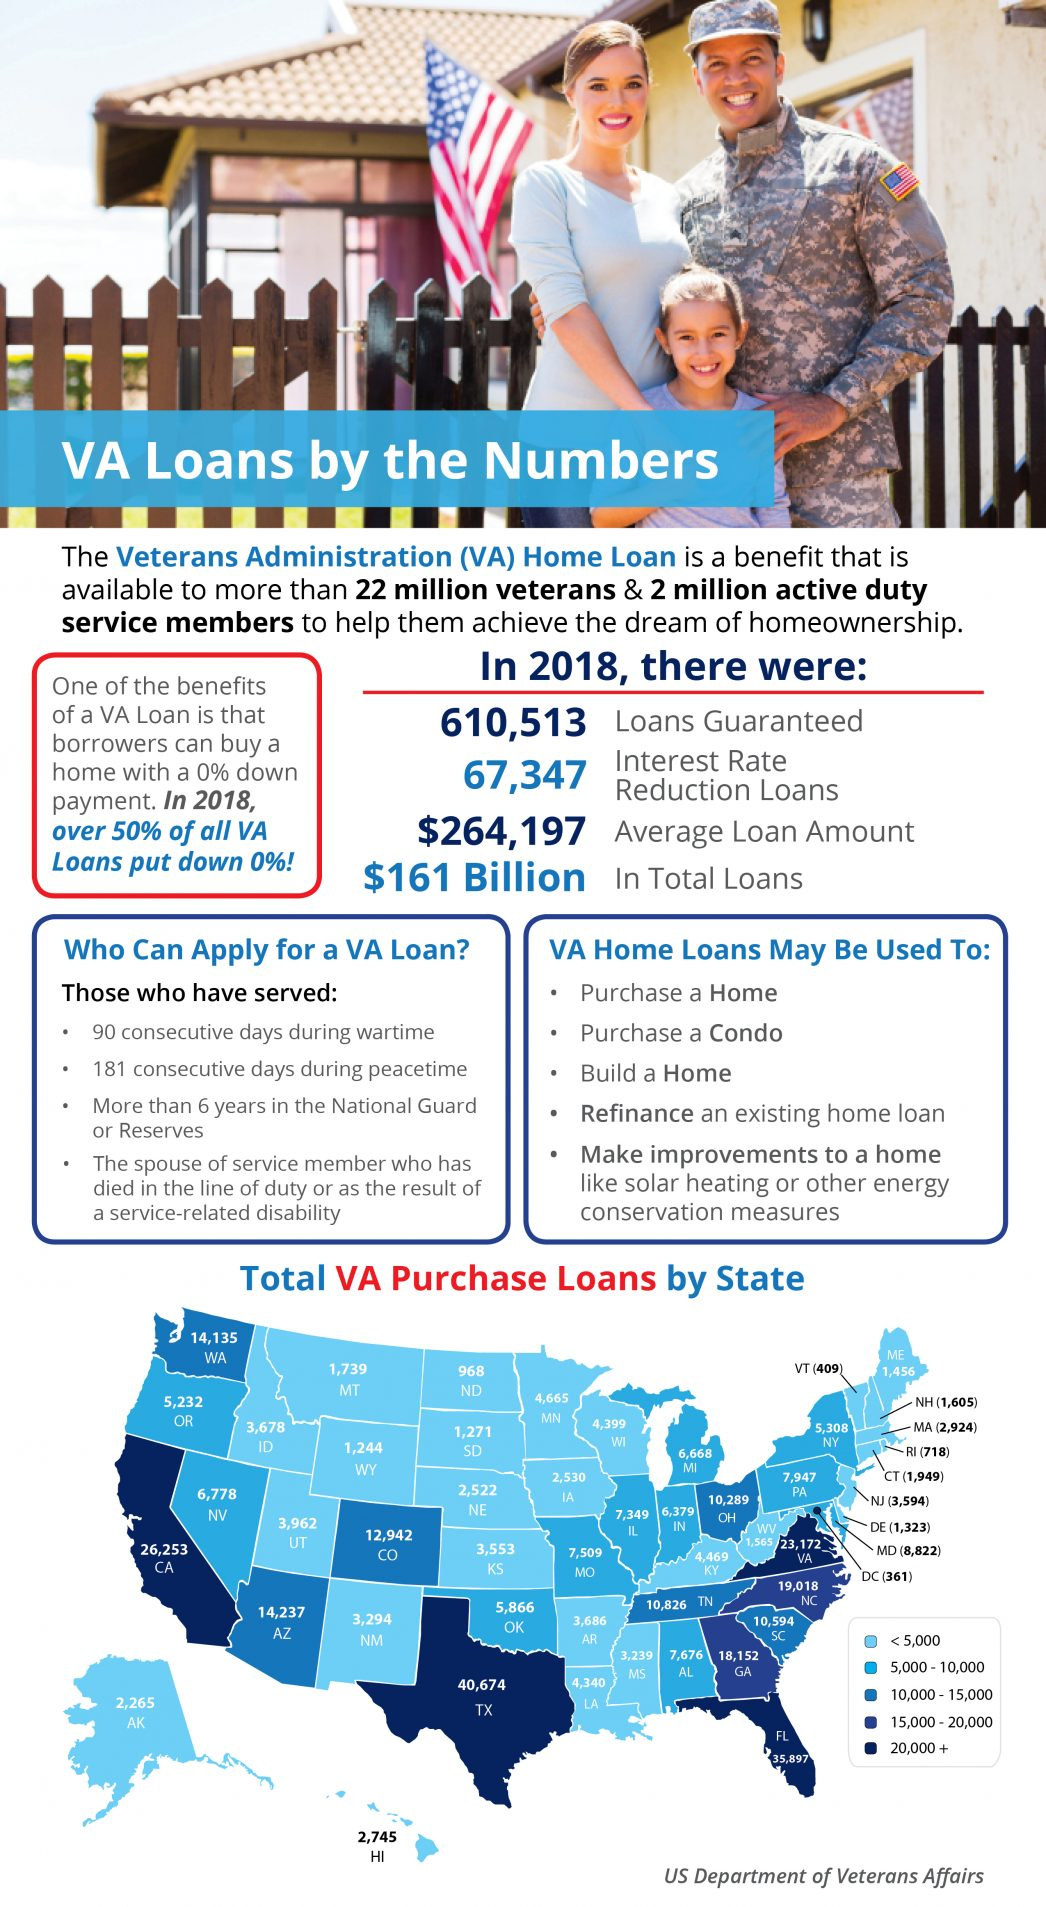 Utah Realty Presents VA Home Loans by the Numbers